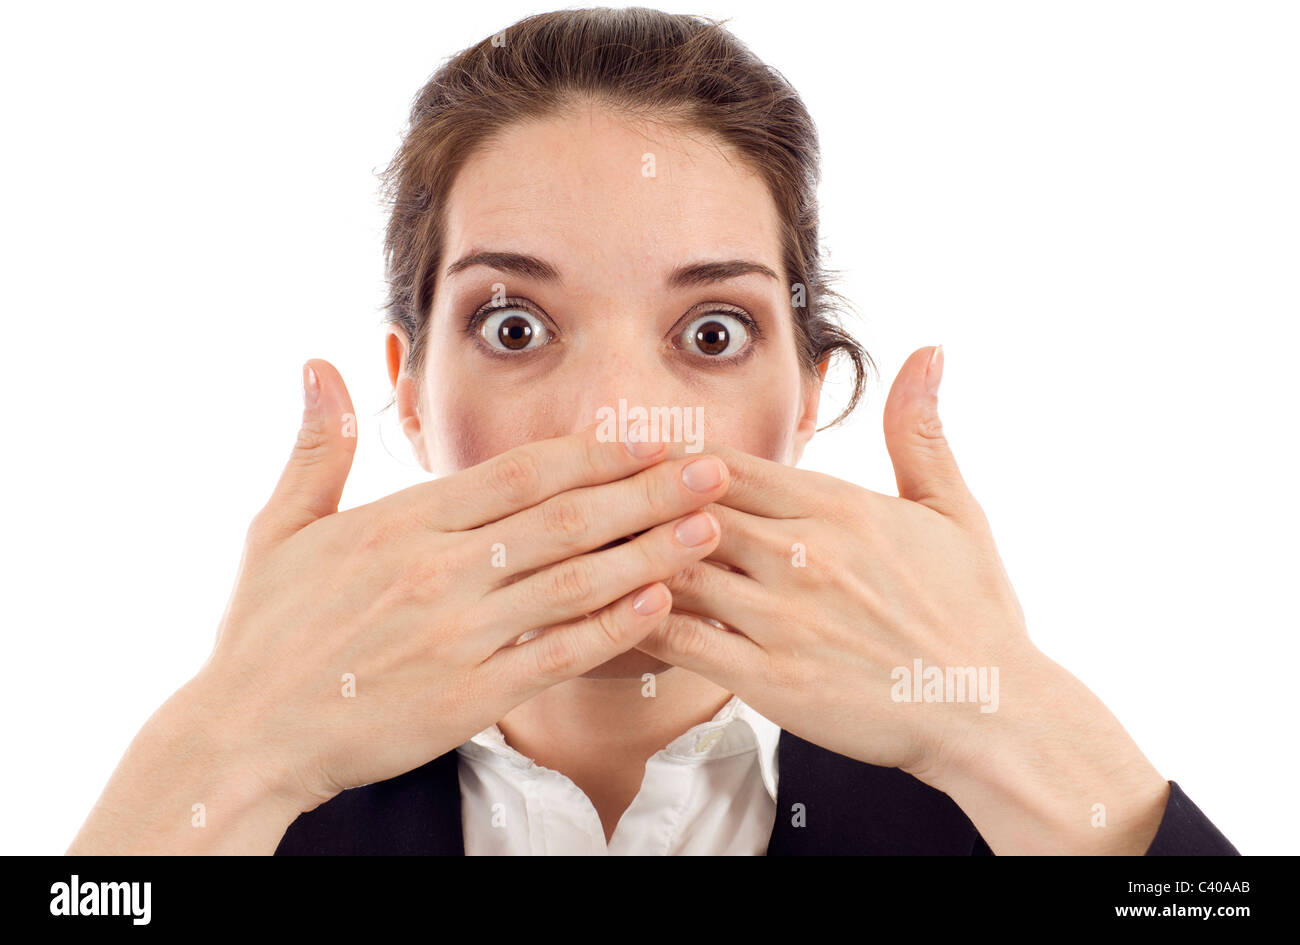 Young woman covering her mouth with both hands isolated over white background - Stock Image